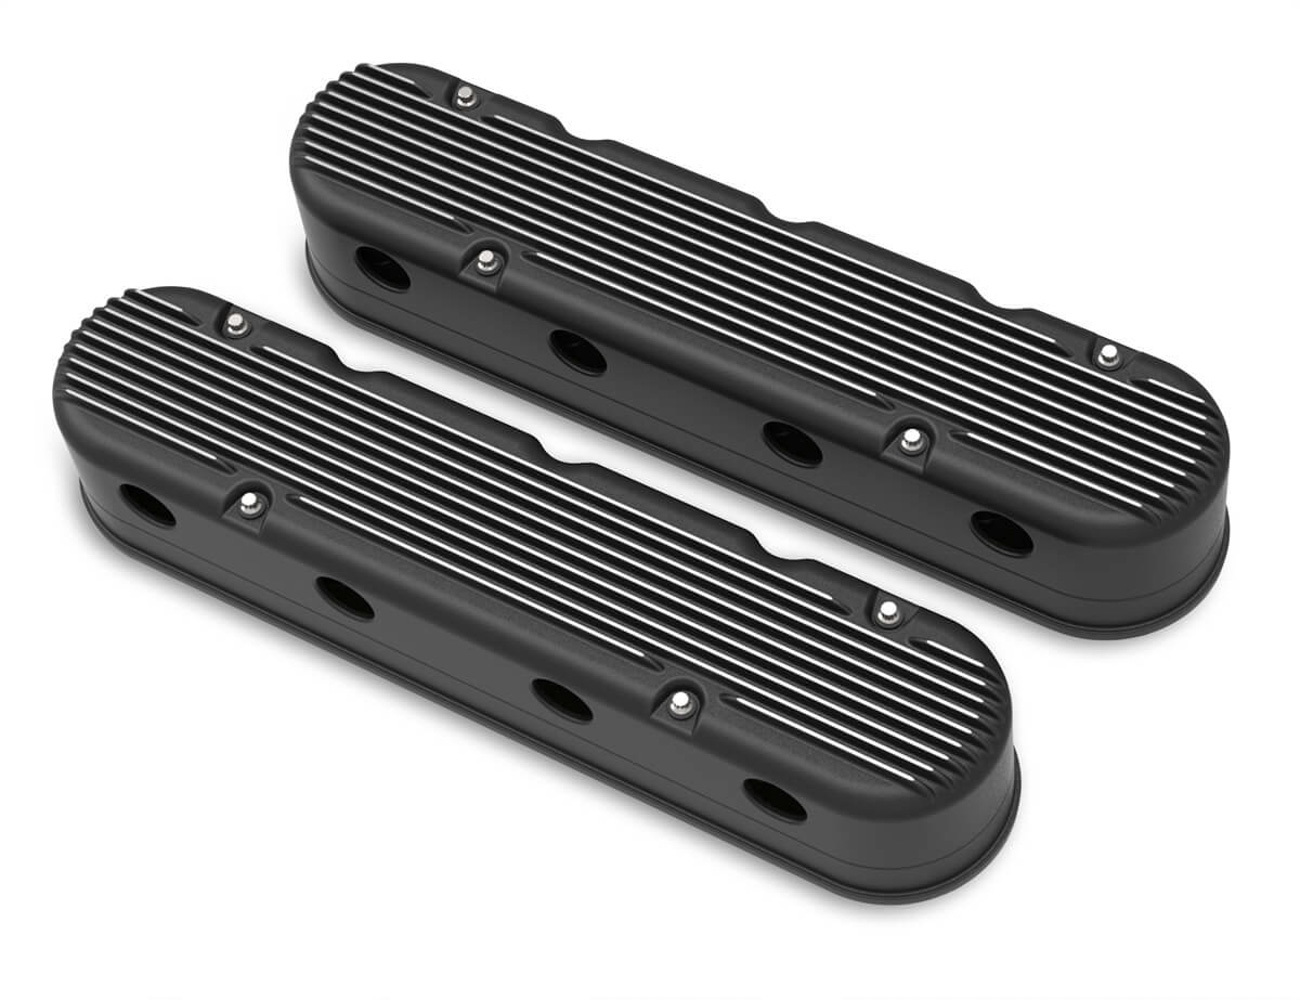 Holley 241-182 Valve Cover, Stock Height, Finned, Aluminum, Satin Black, GM LS-Series, Kit